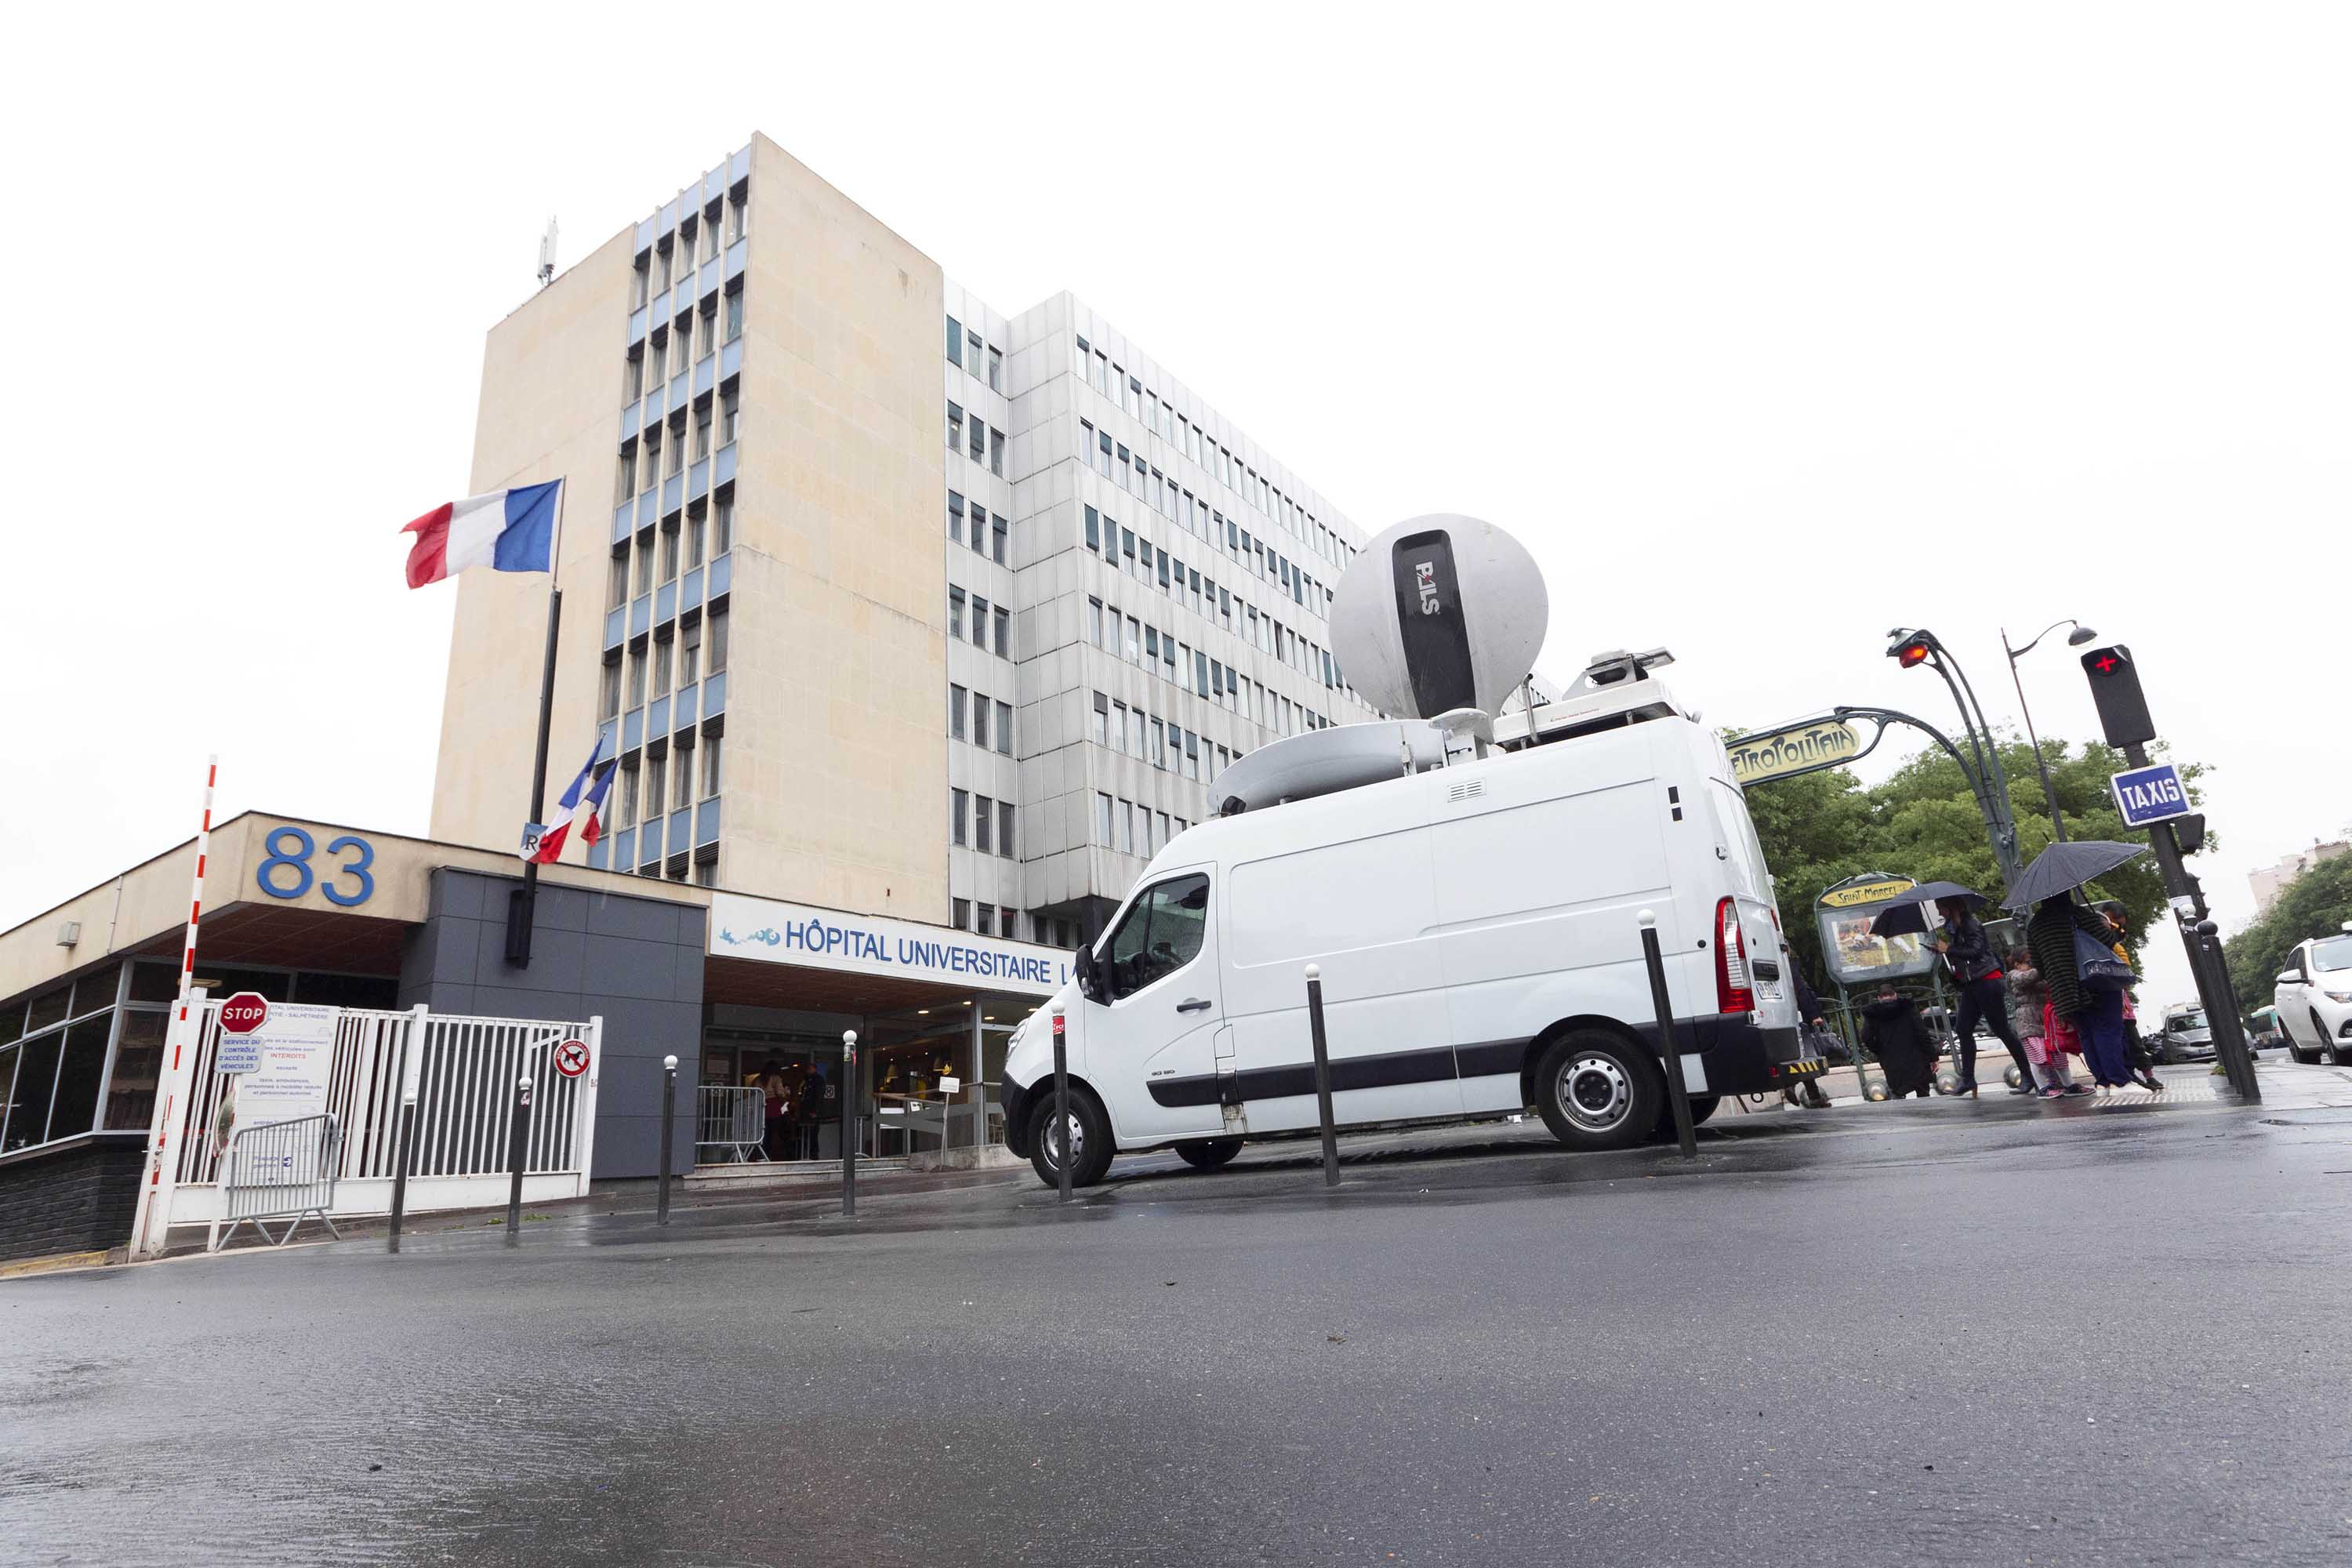 A view of thePitieSalpetrierehospital in Paris on February 5.